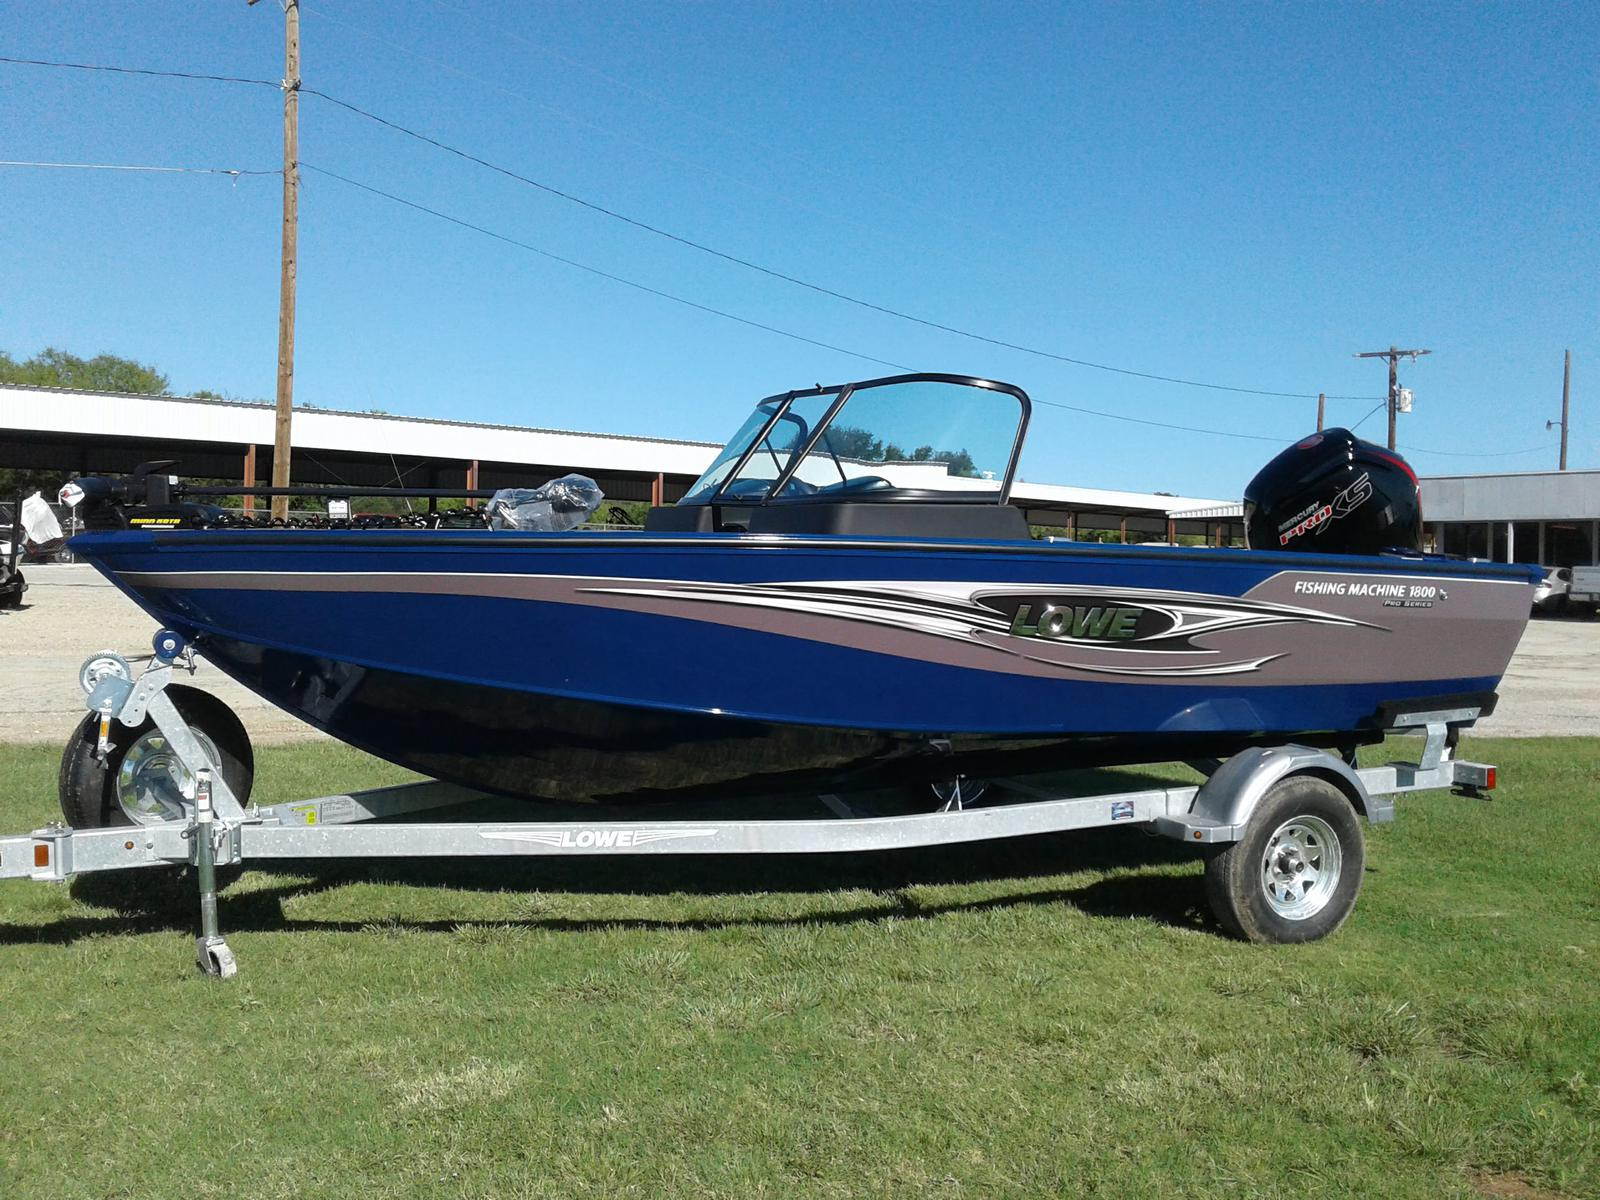 Boats from Lowe Breckenridge TX Breckenridge, TX (254) 559-2815